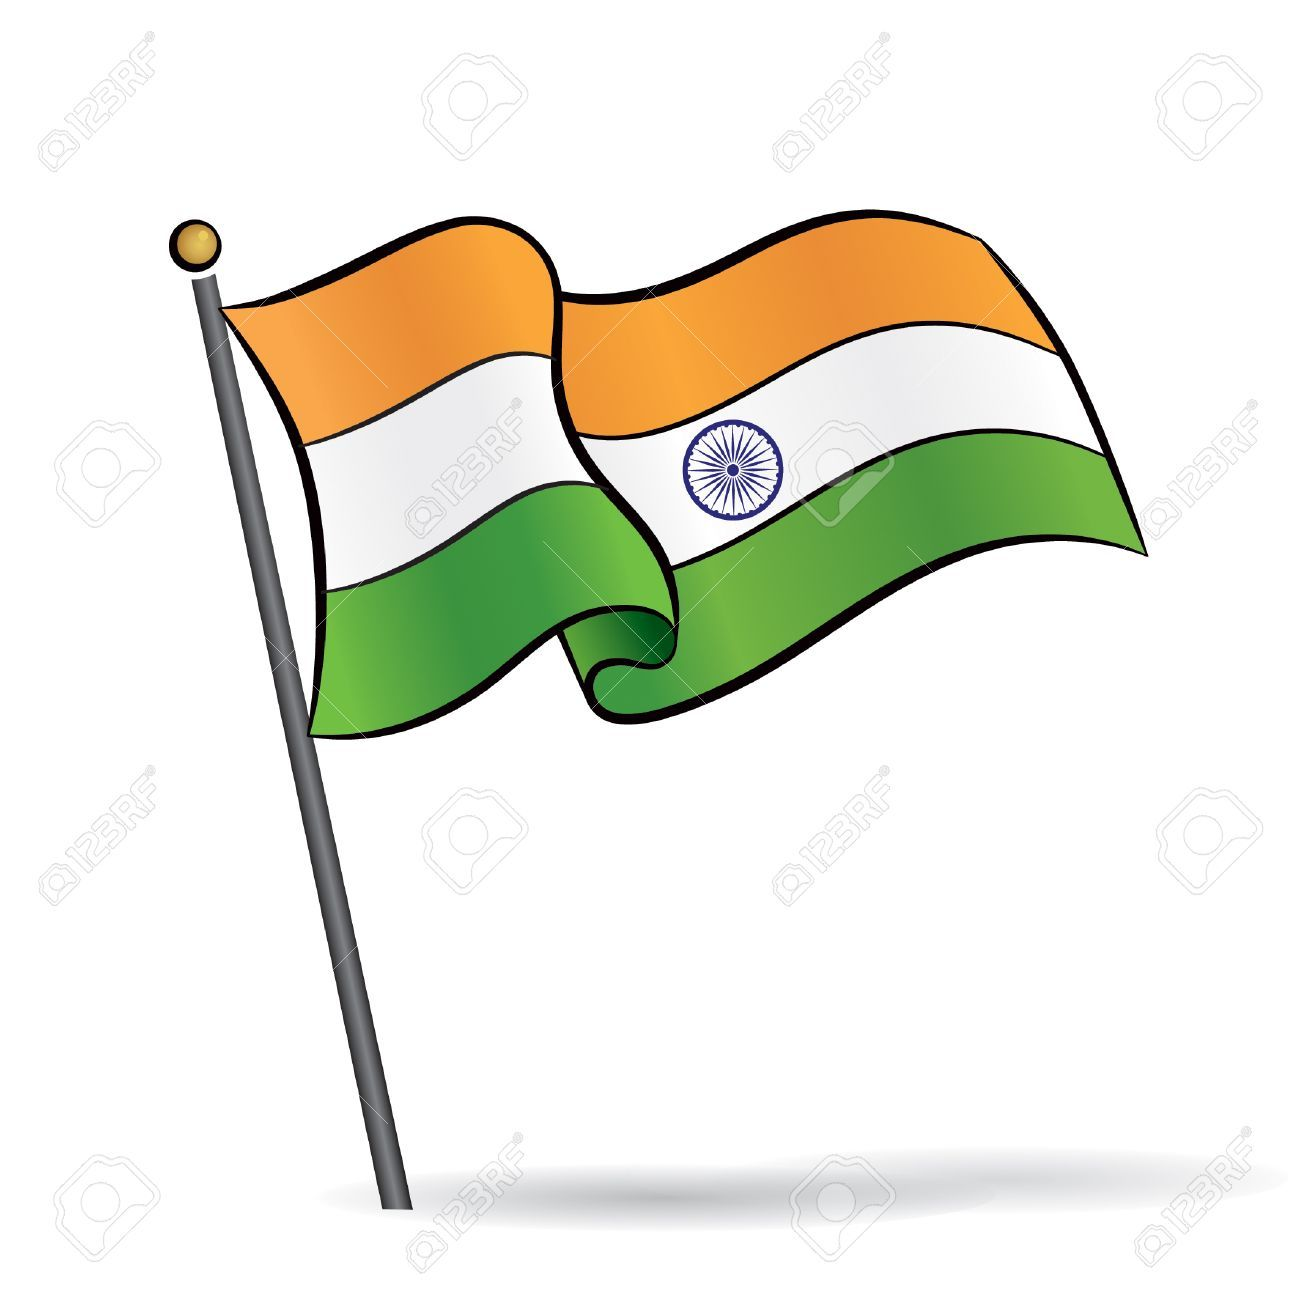 Indian flag clipart pic clip art black and white download Indian flag clipart images 2 » Clipart Portal clip art black and white download